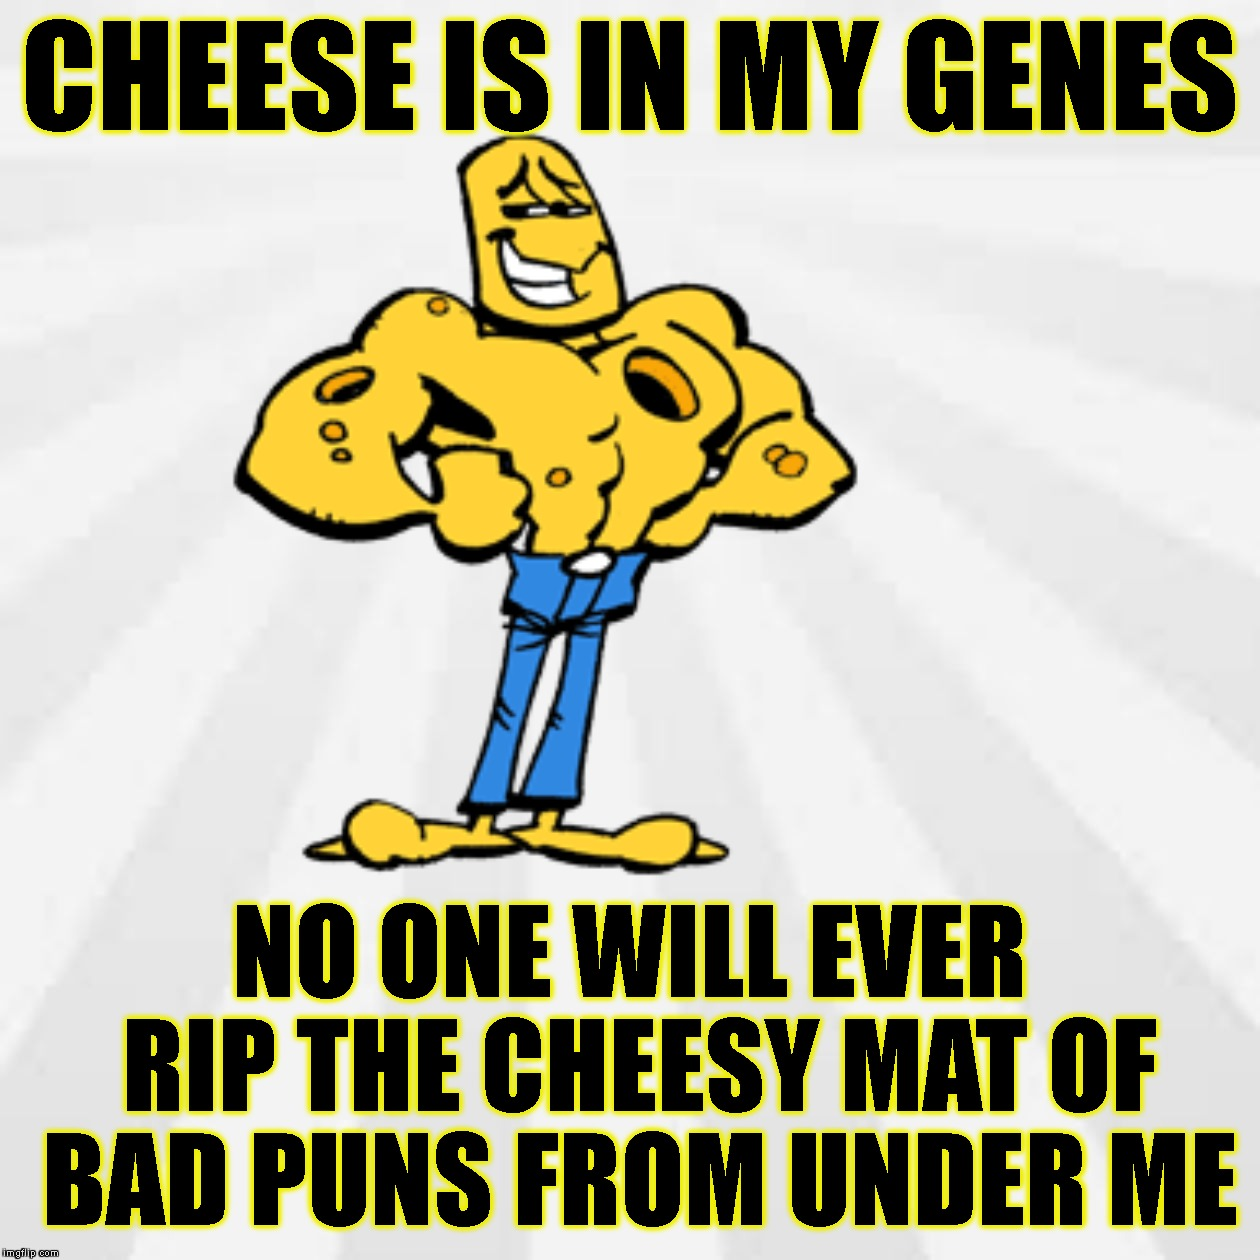 Richard Cheese | CHEESE IS IN MY GENES NO ONE WILL EVER RIP THE CHEESY MAT OF BAD PUNS FROM UNDER ME | image tagged in puns,bad puns,dad jokes,cheesy,face palm,corny | made w/ Imgflip meme maker